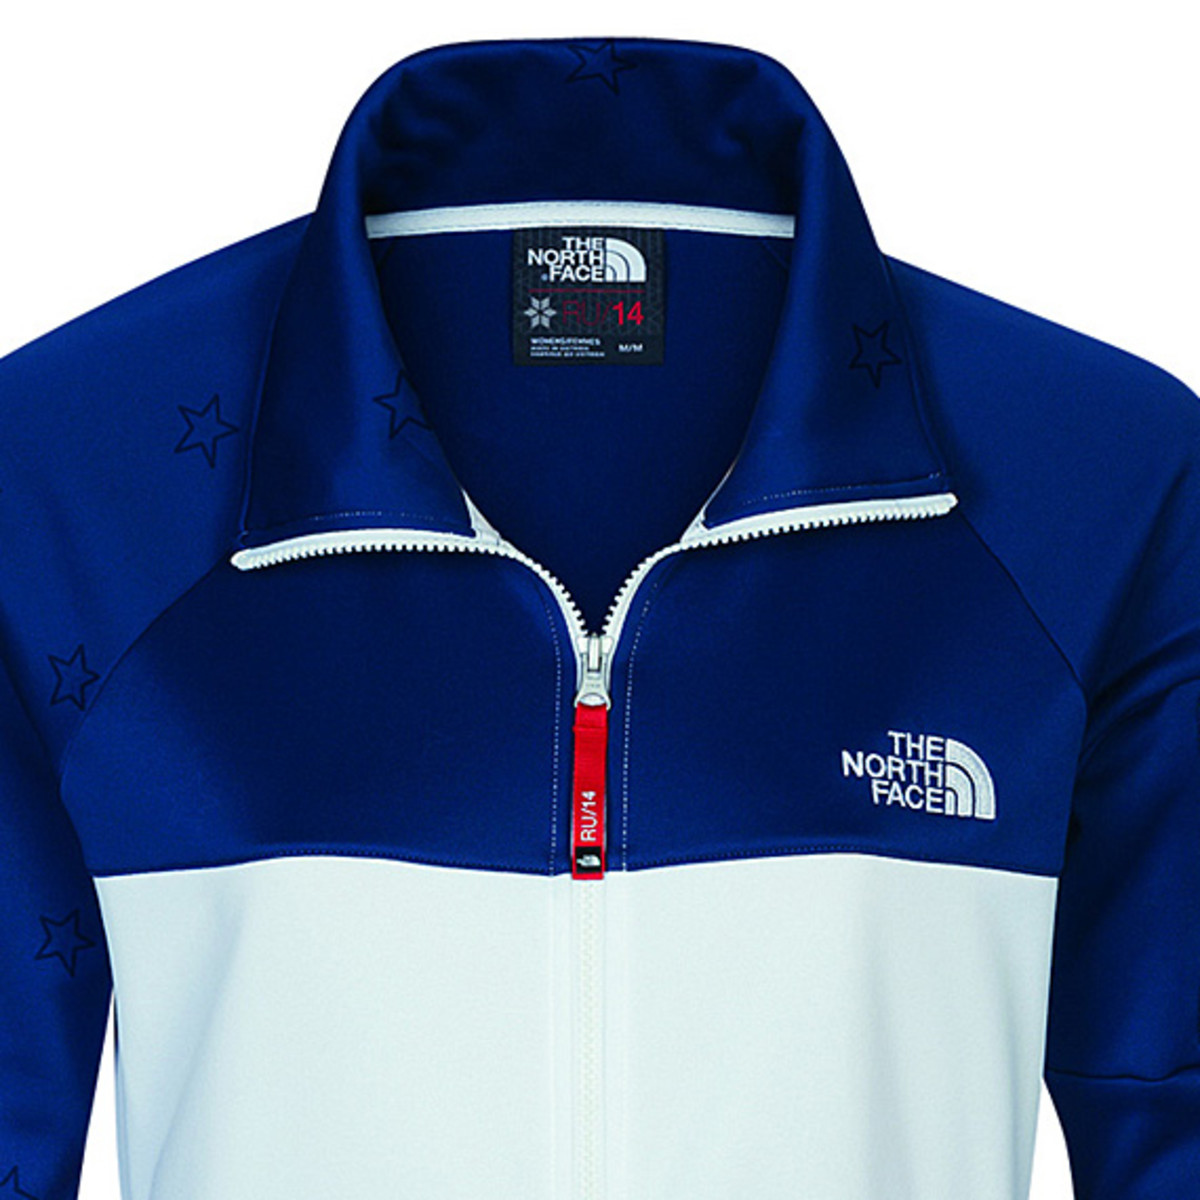 the-north-face-2014-winter-olympics-sochi-team-usa-villagewear-collection-wmns-04a